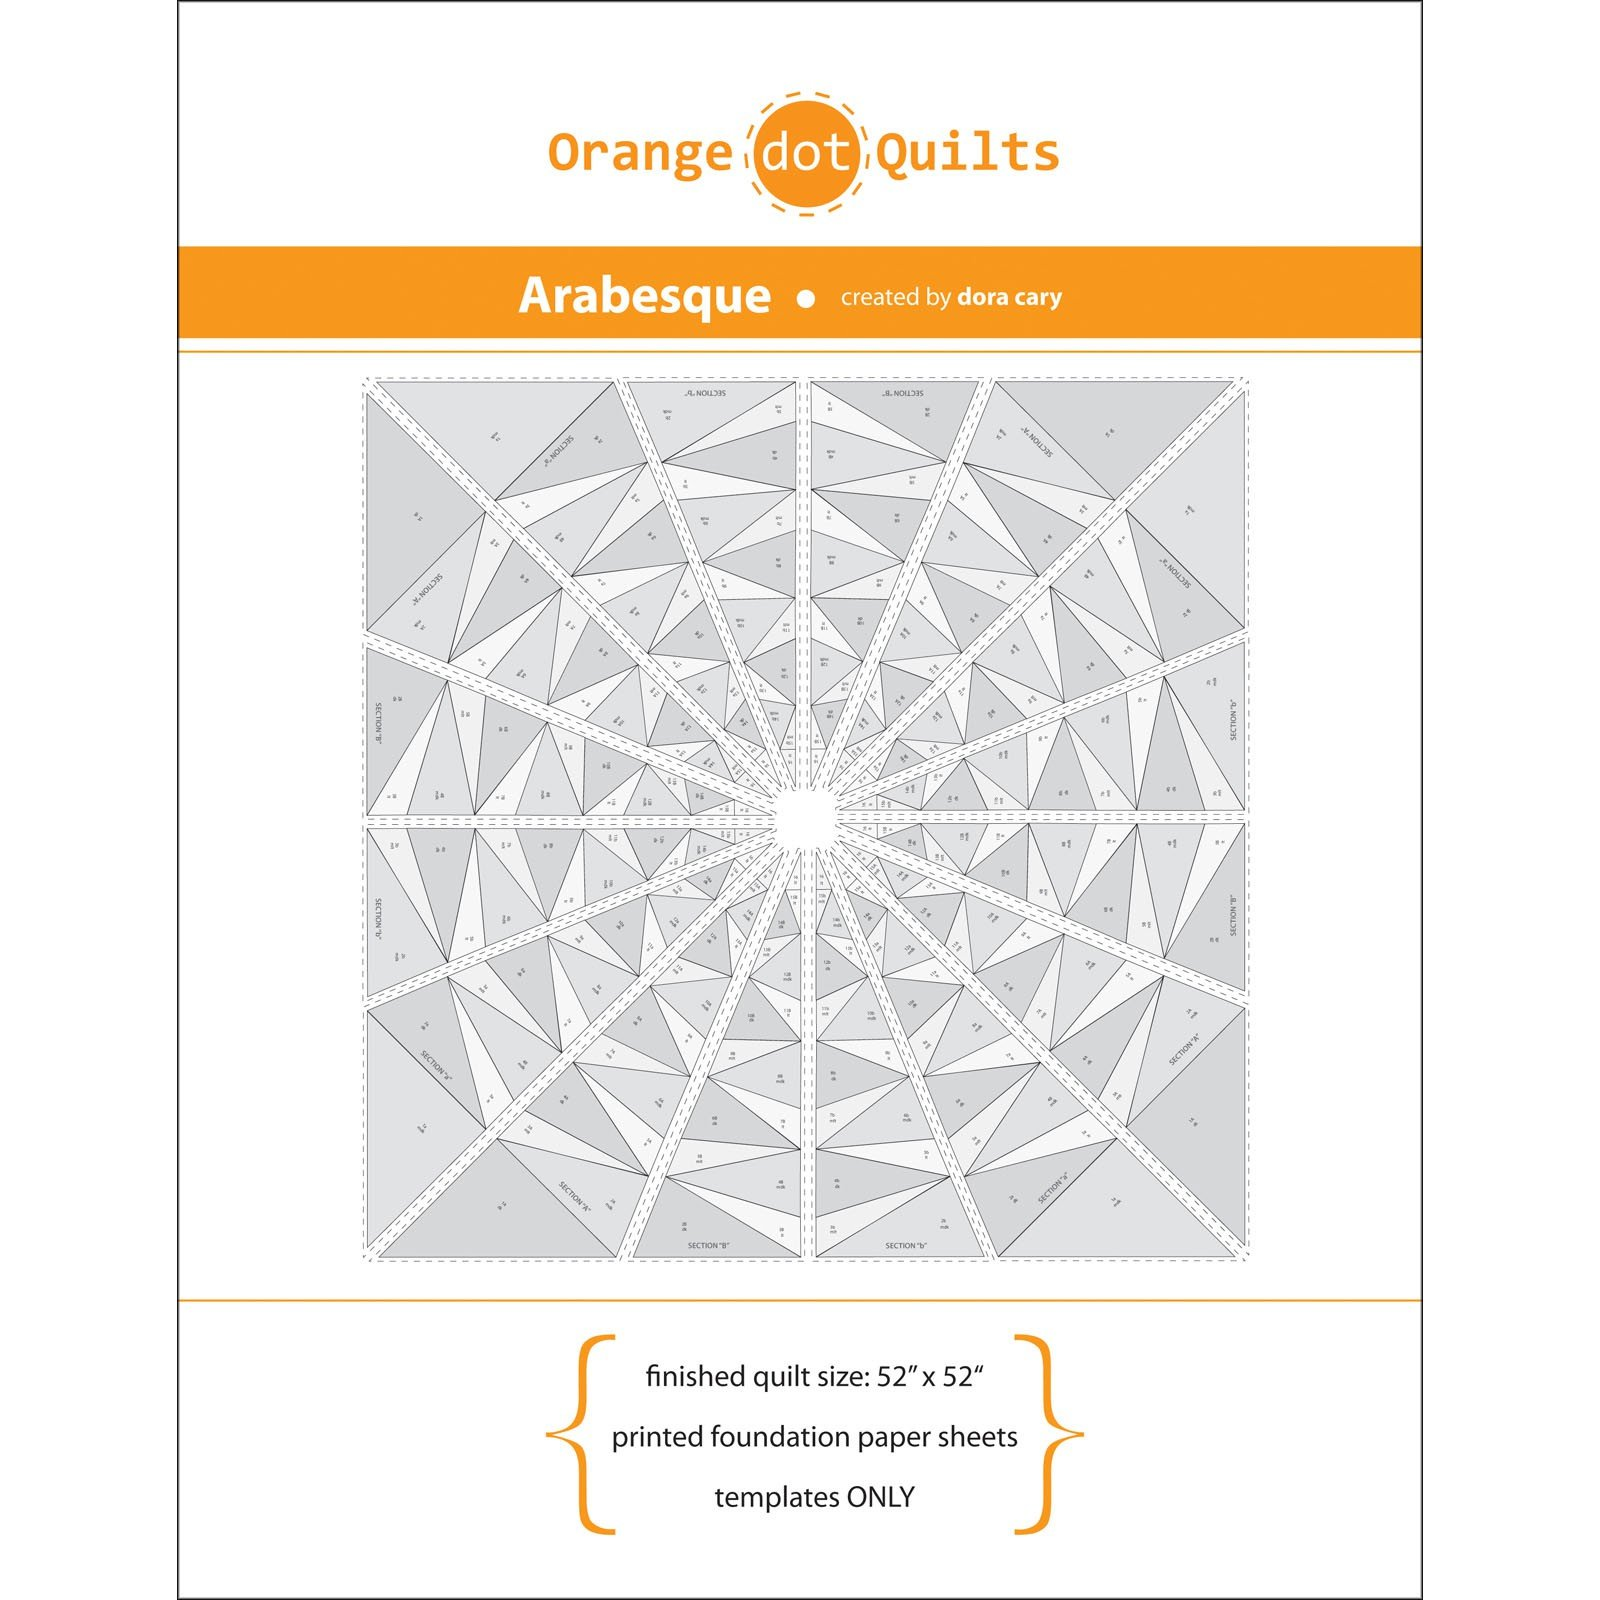 Arabesque printed foundation paper sheets - Templates Only